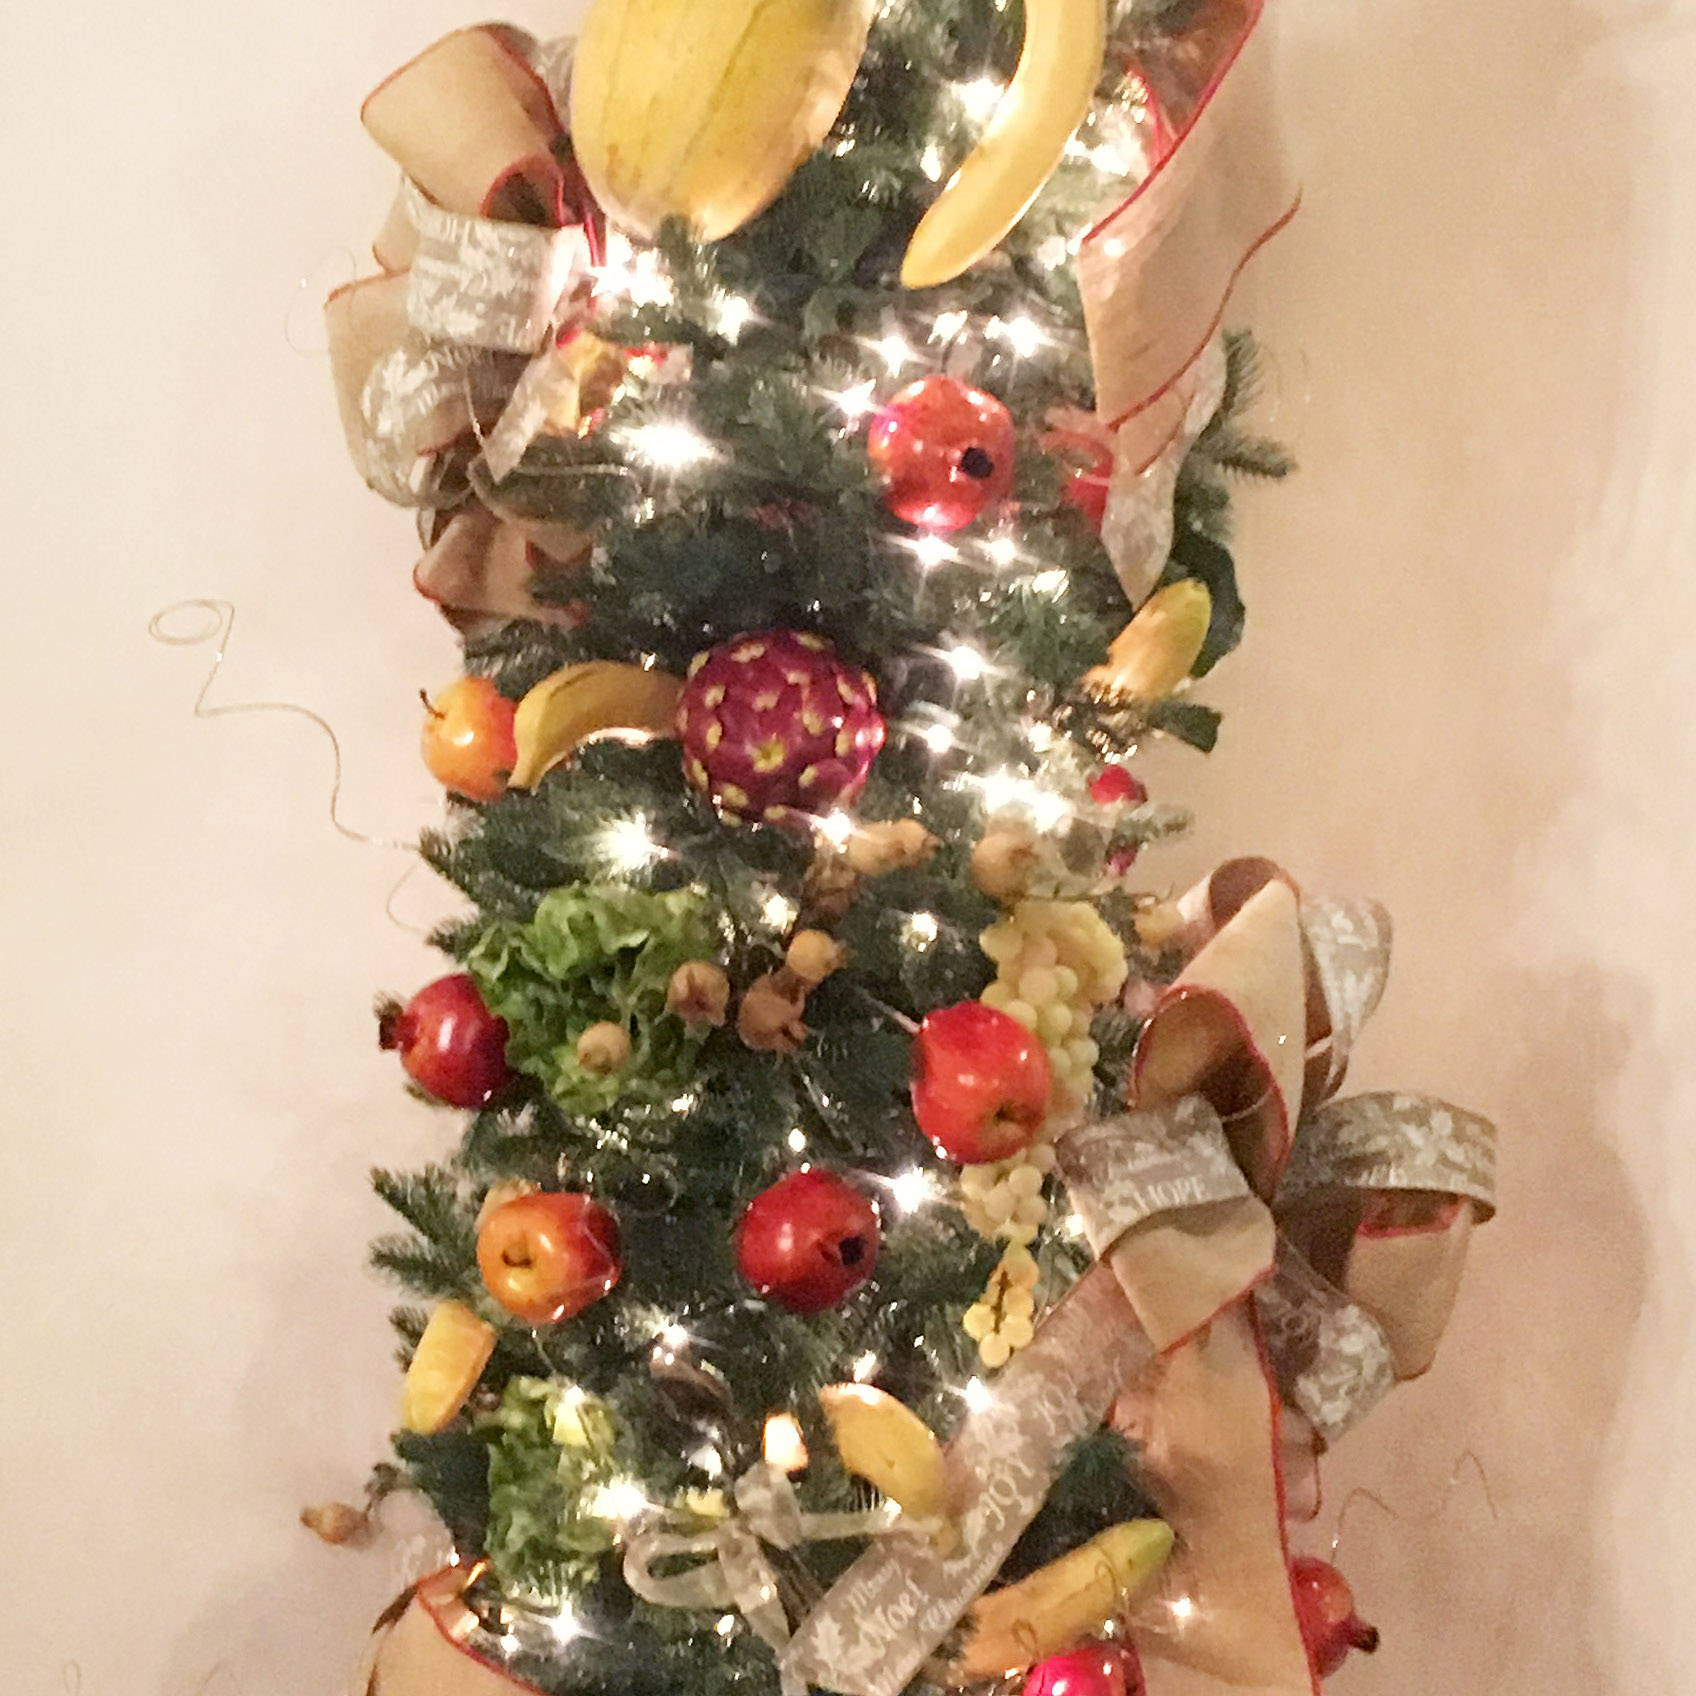 Fruit themed Christmas tree with fruit shaped ornaments